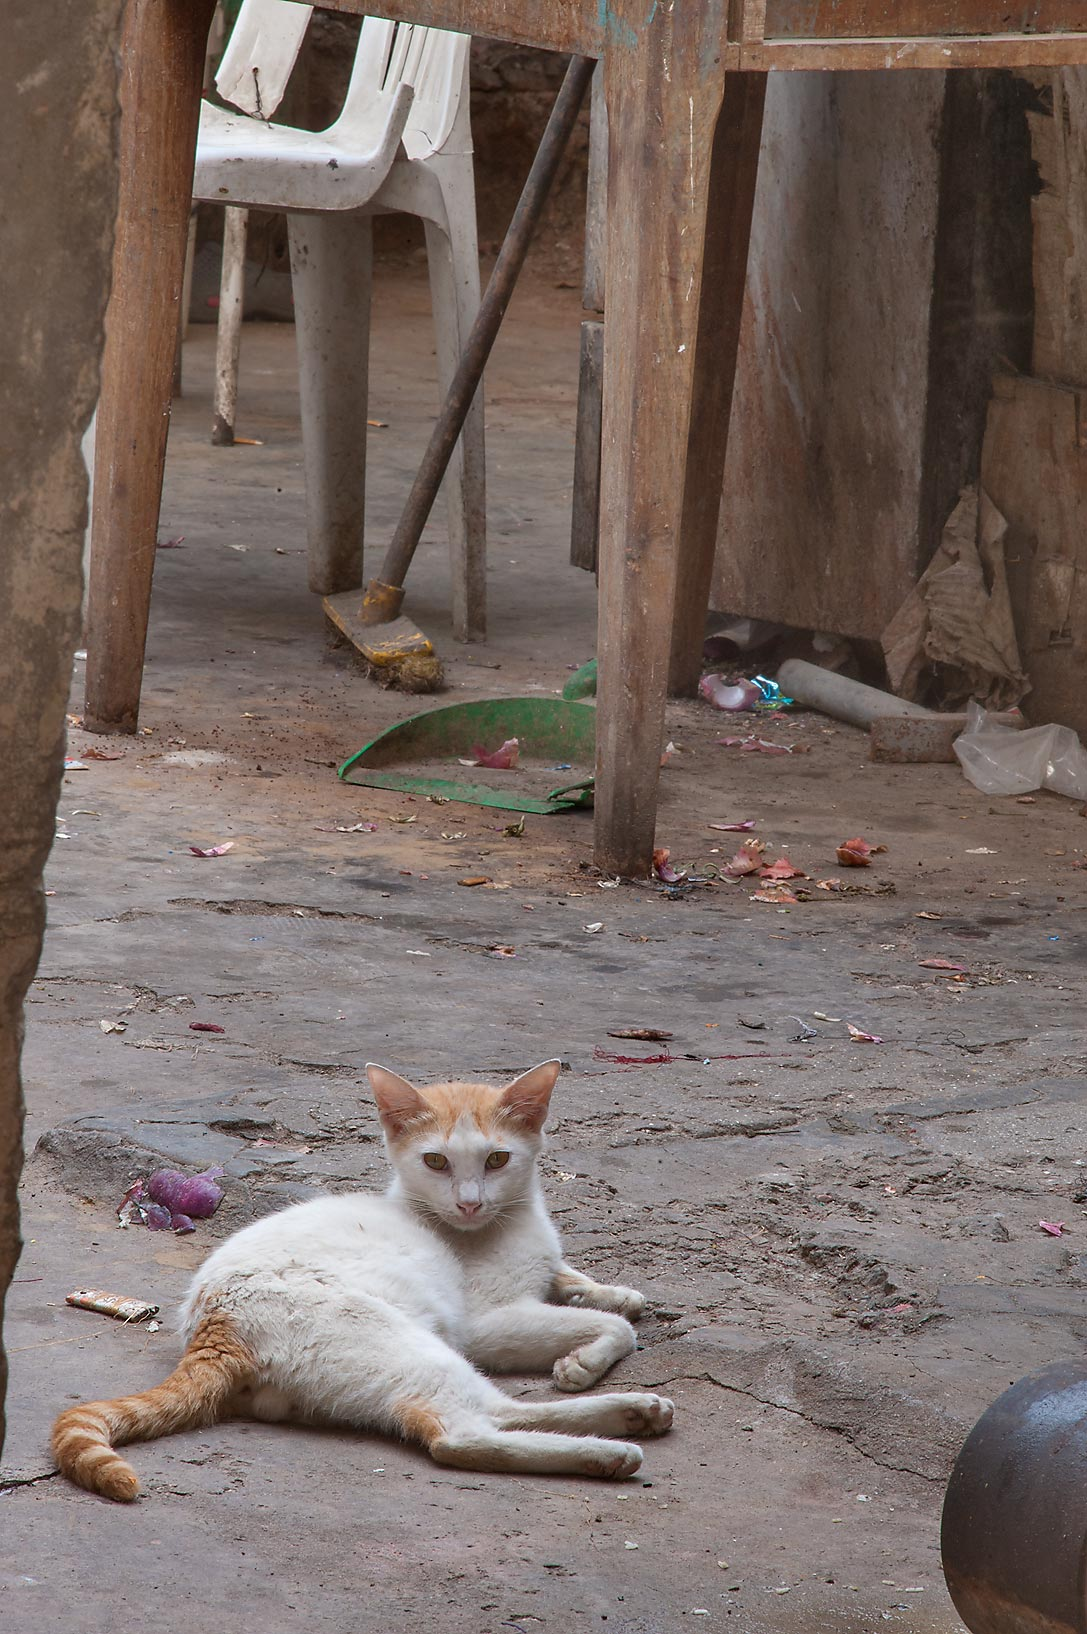 A cat resting in worker's apartment on Al Najada St. in Musheirib area. Doha, Qatar